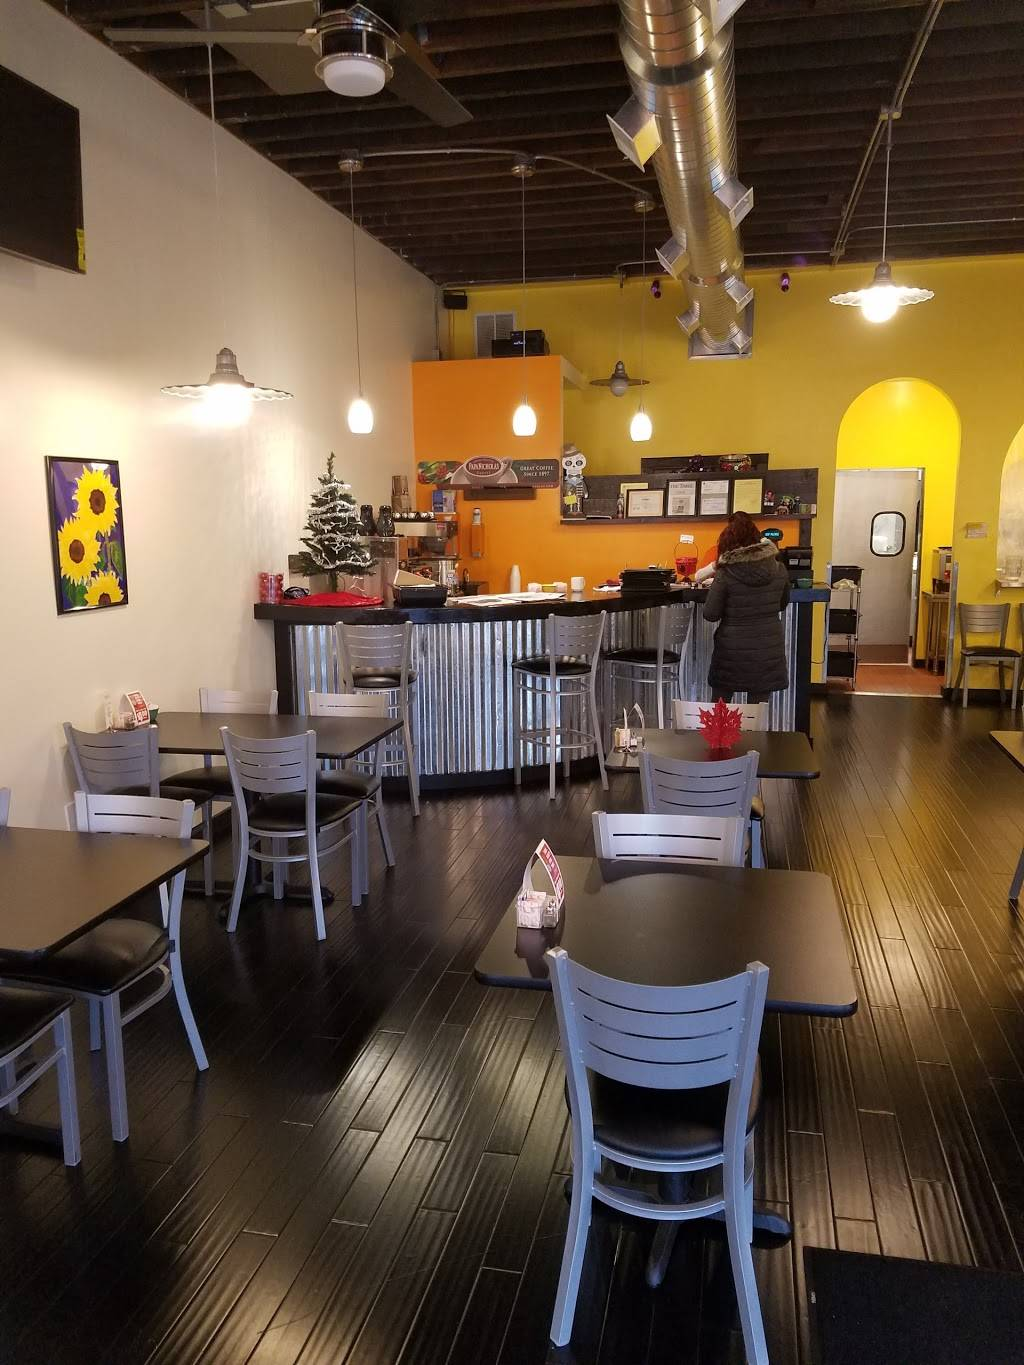 Whiting Cafe and Cantina | cafe | 1320 119th St, Whiting, IN 46394, USA | 2196594800 OR +1 219-659-4800